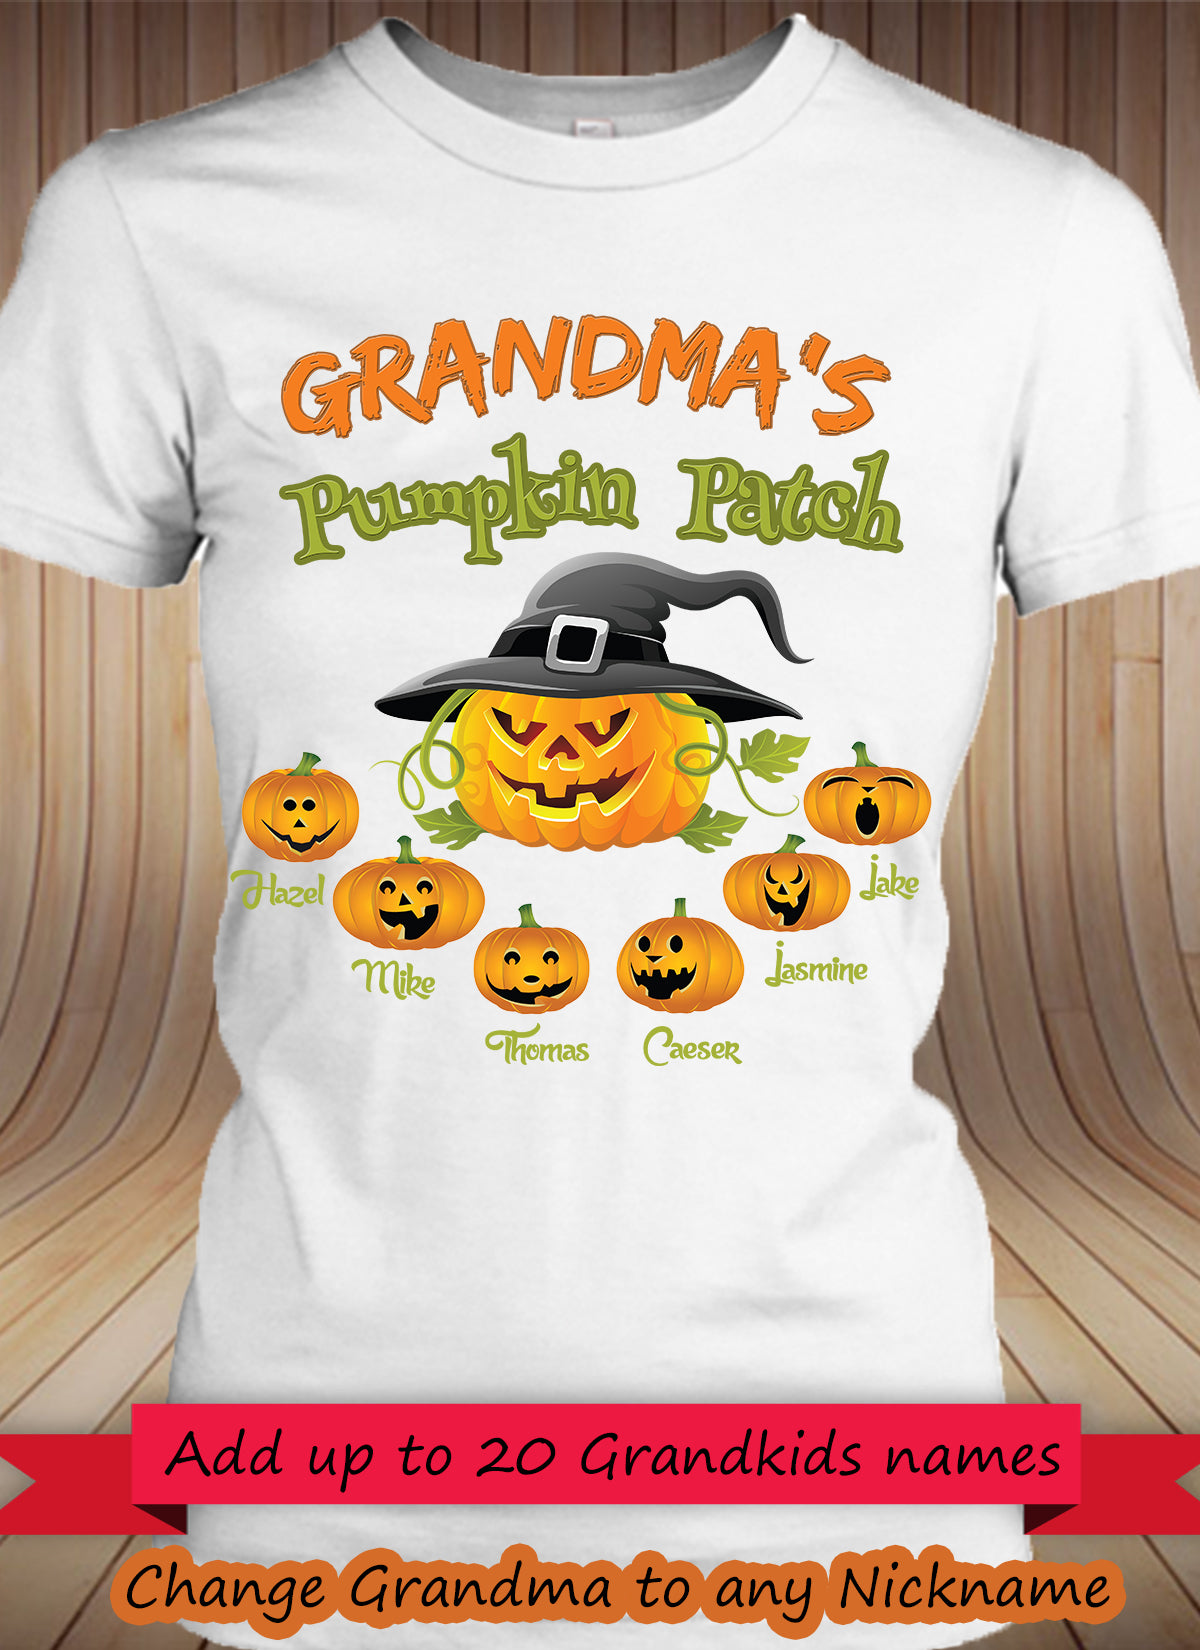 Get the Spooky Gift Ideas for Next Halloween at Gifys4Family